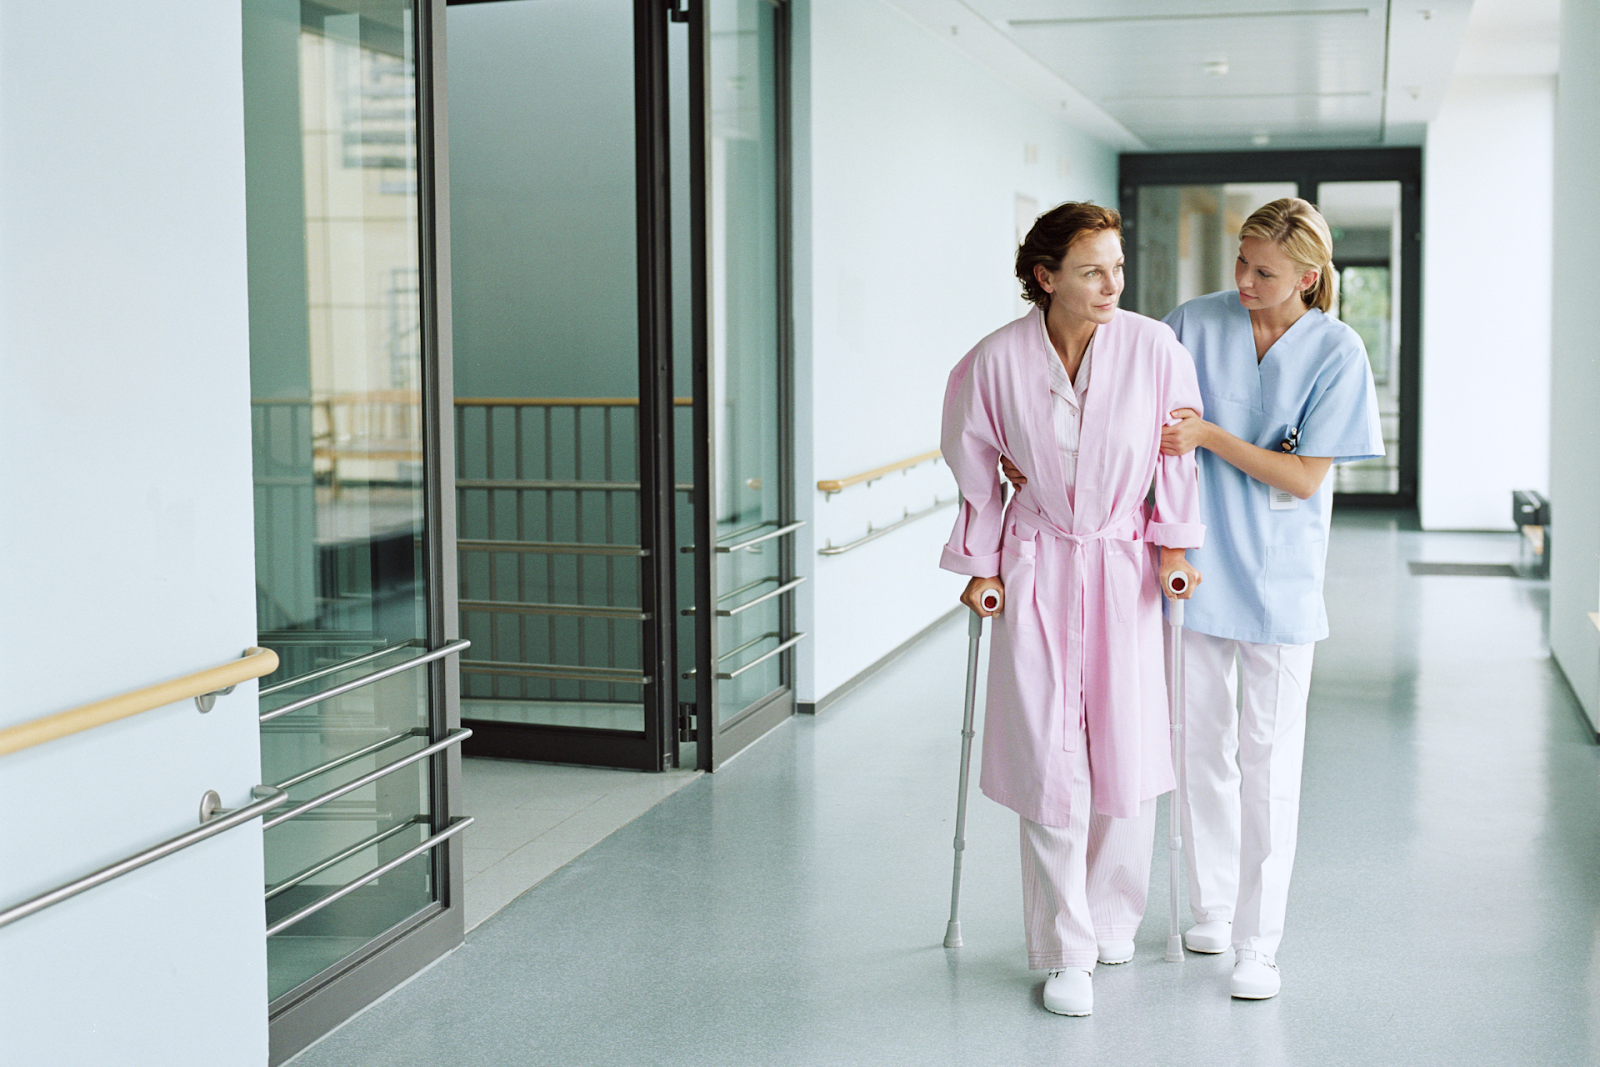 female medical staff helping patient